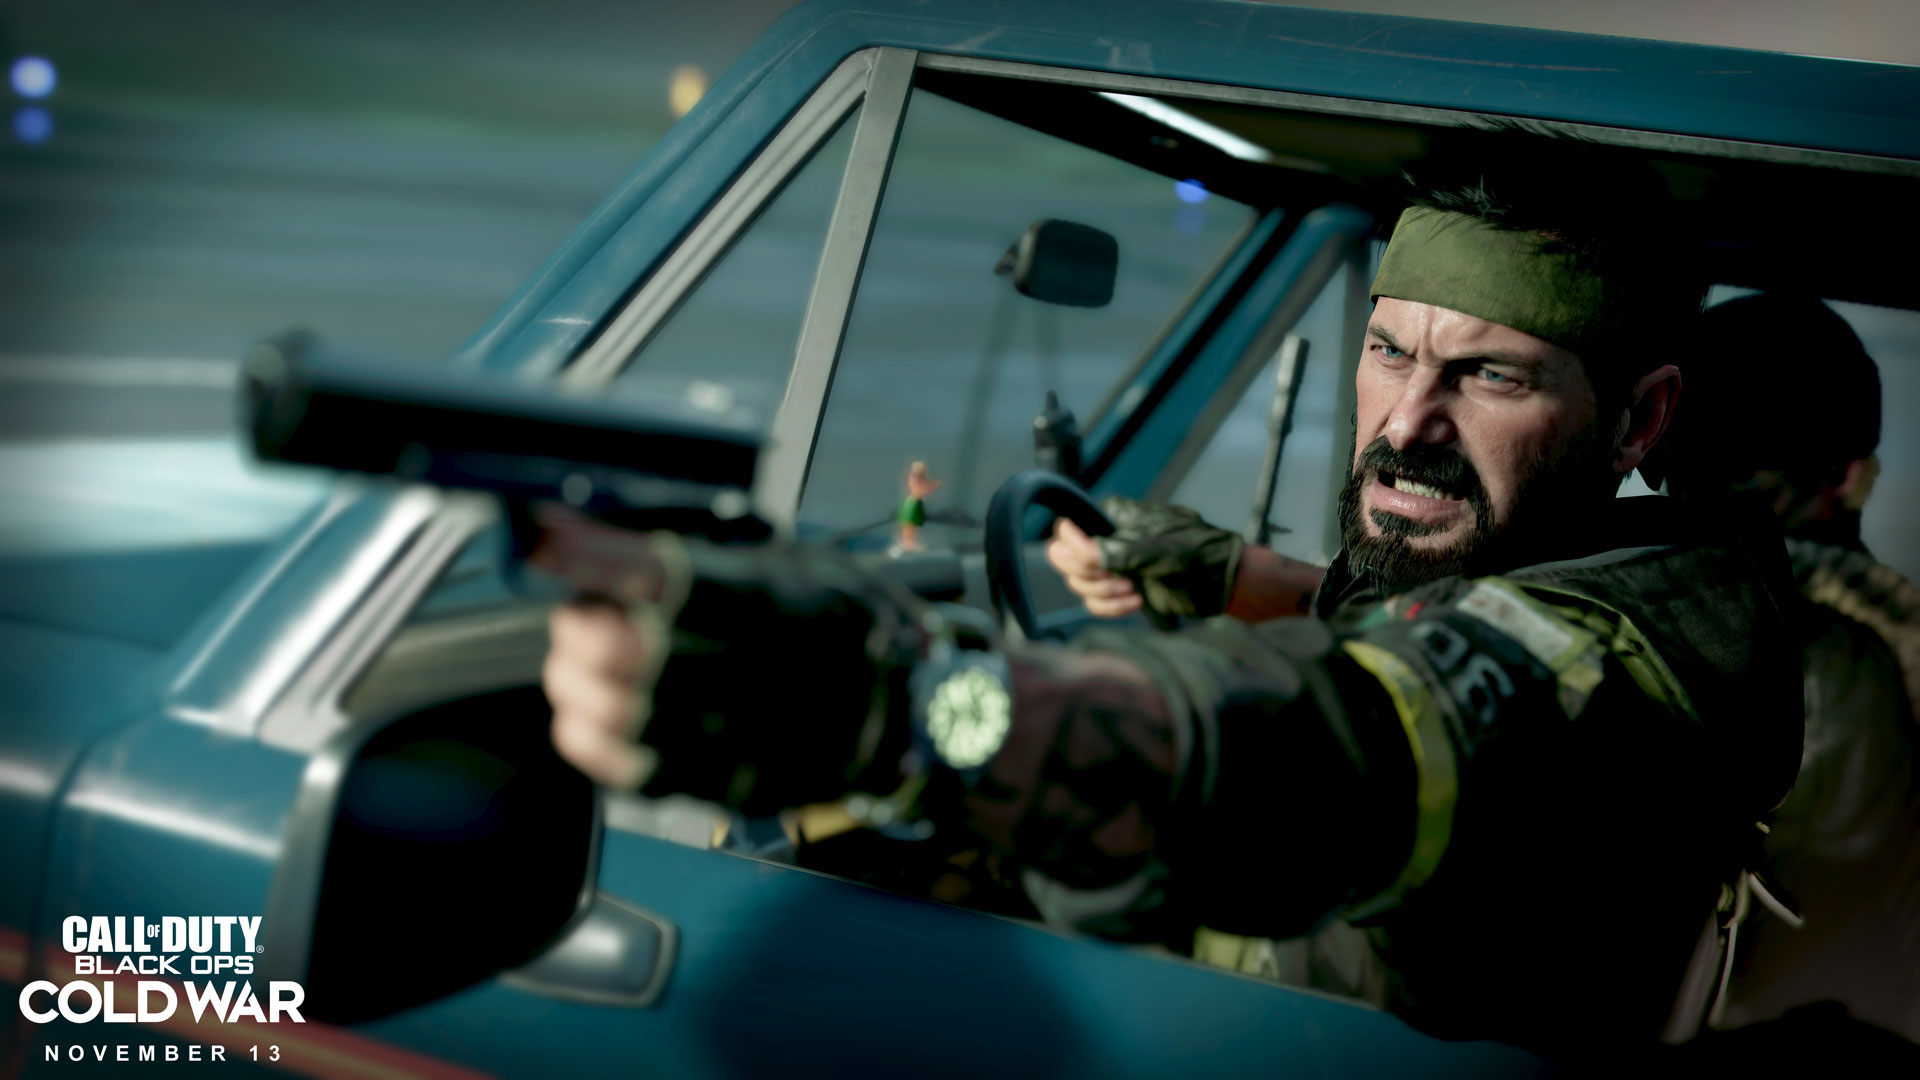 Like most Call of Duty games, <em>Black Ops: Cold War </em>features lots of angry dudes shooting at stuff.